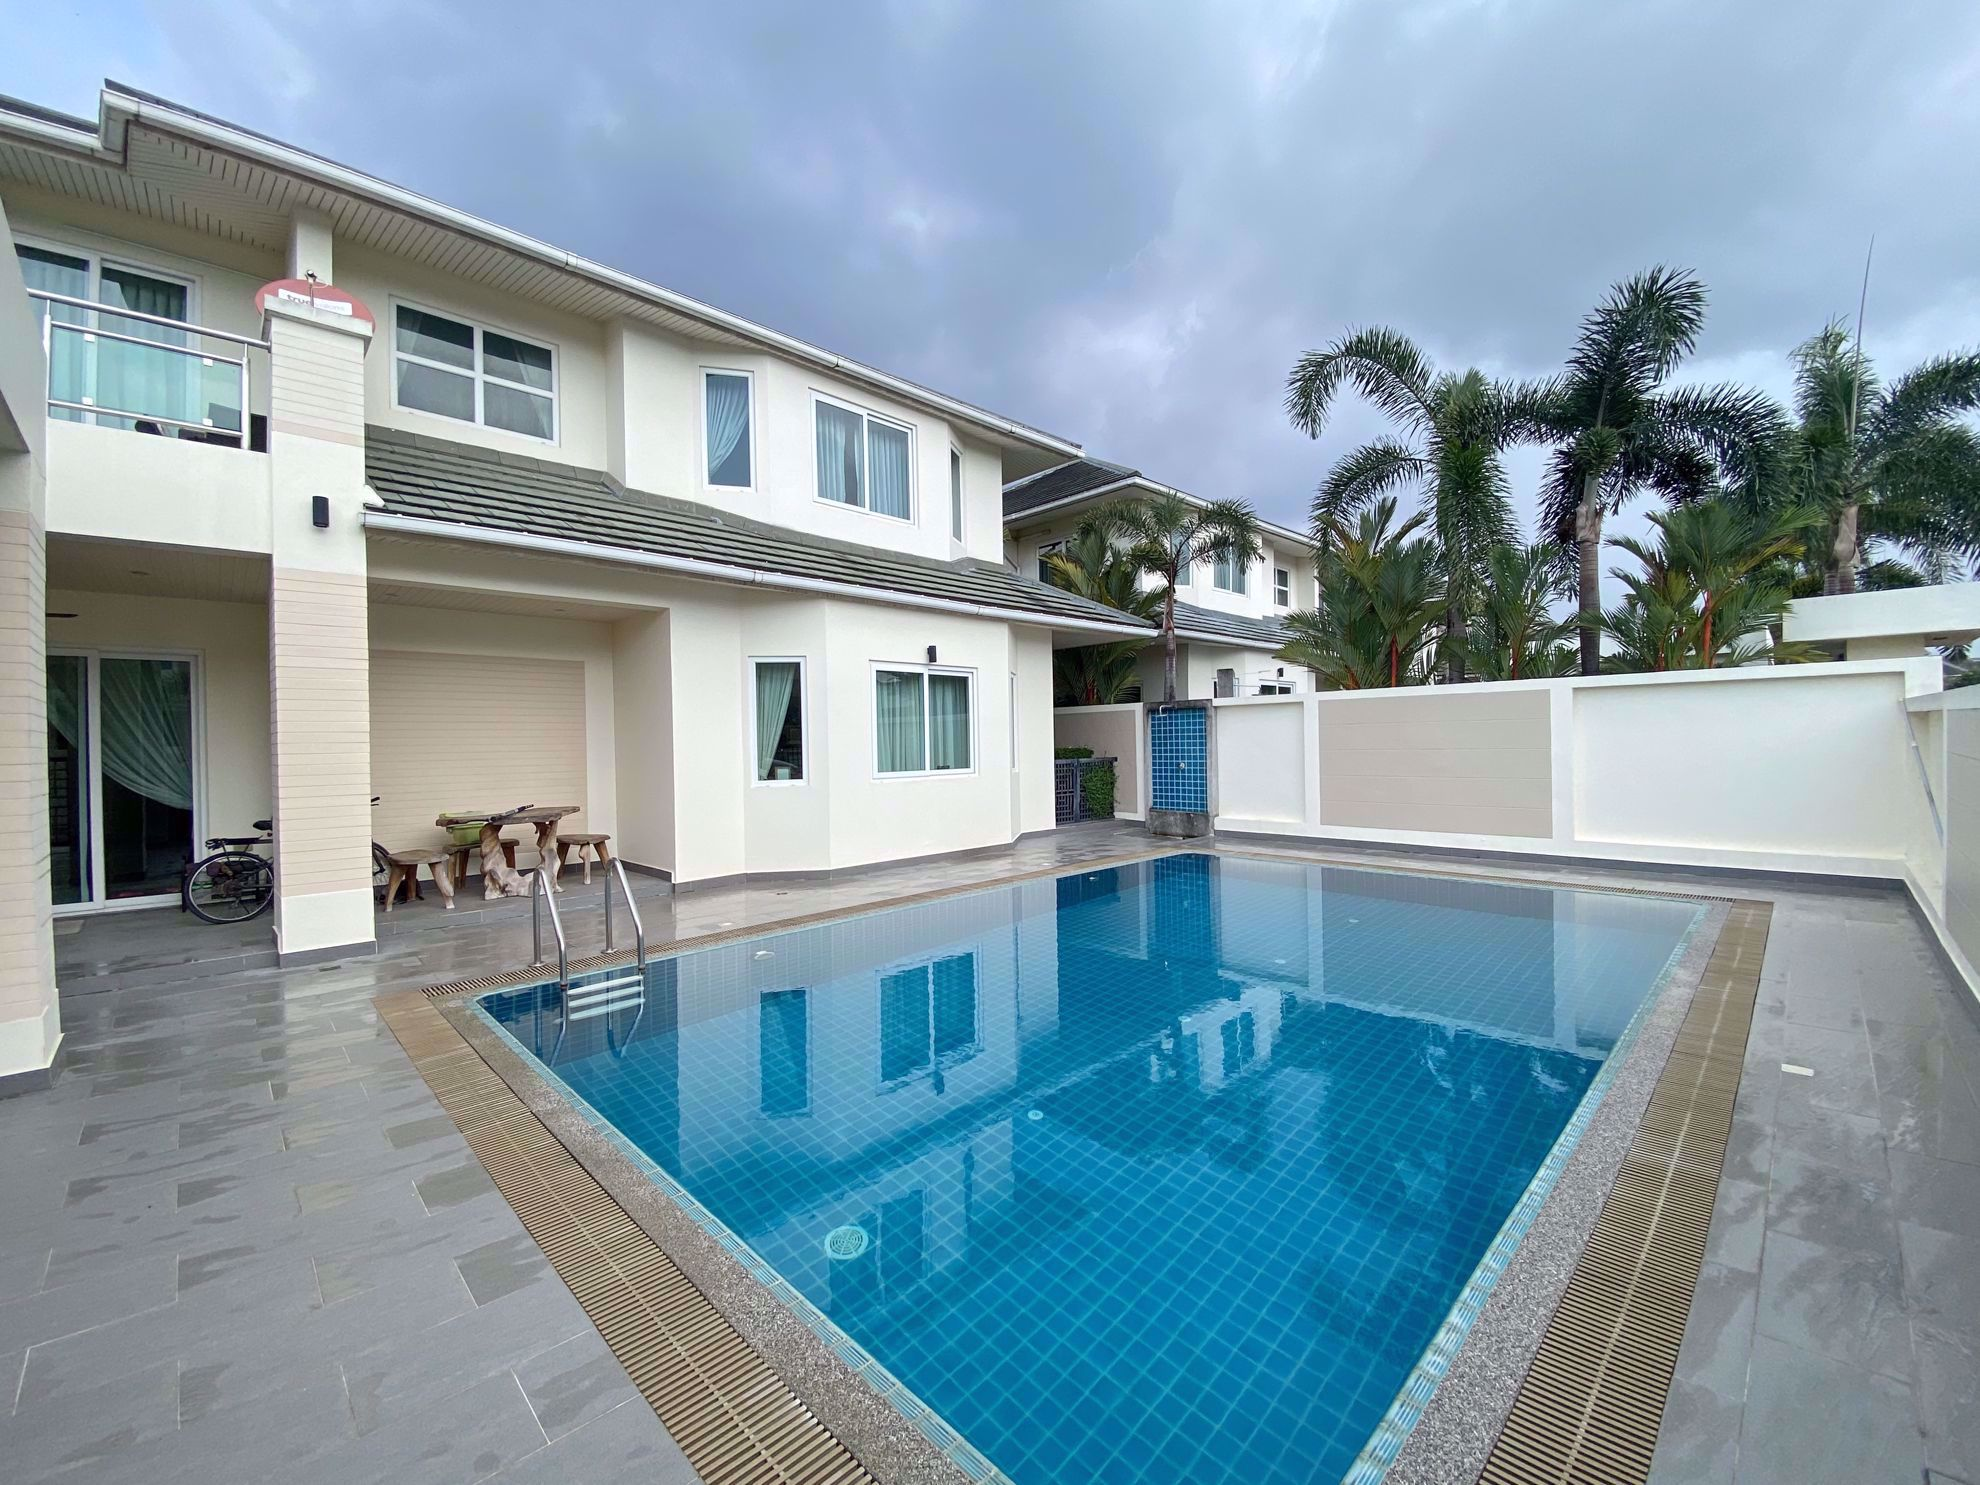 Picture of 4  Bedrooms bed in House in Green Field Villas 4 in East Pattaya H009034